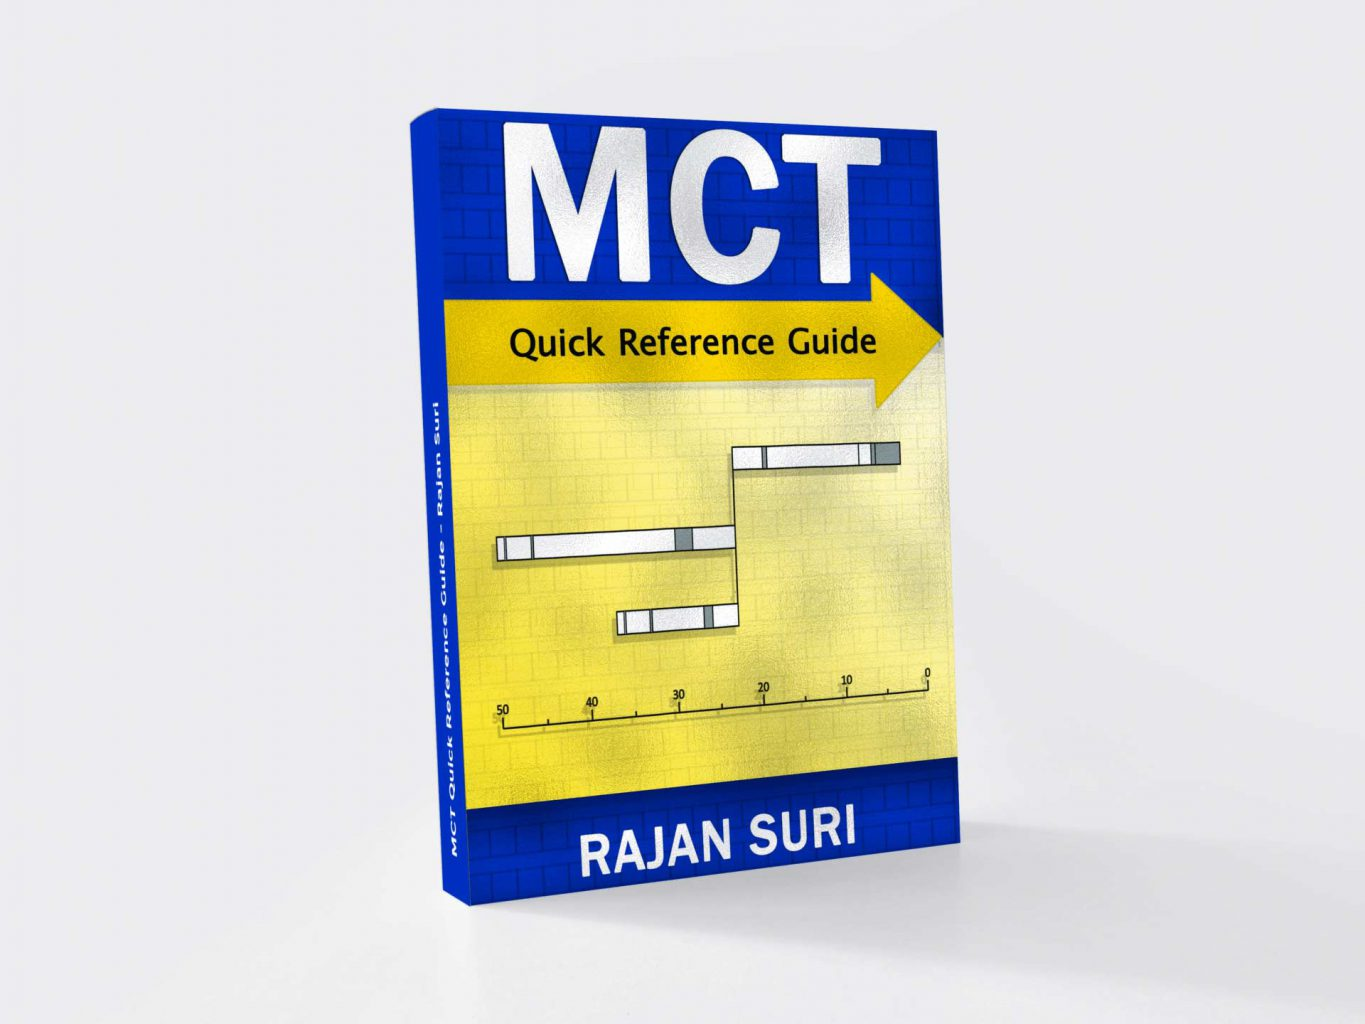 MCT-maps - Functions